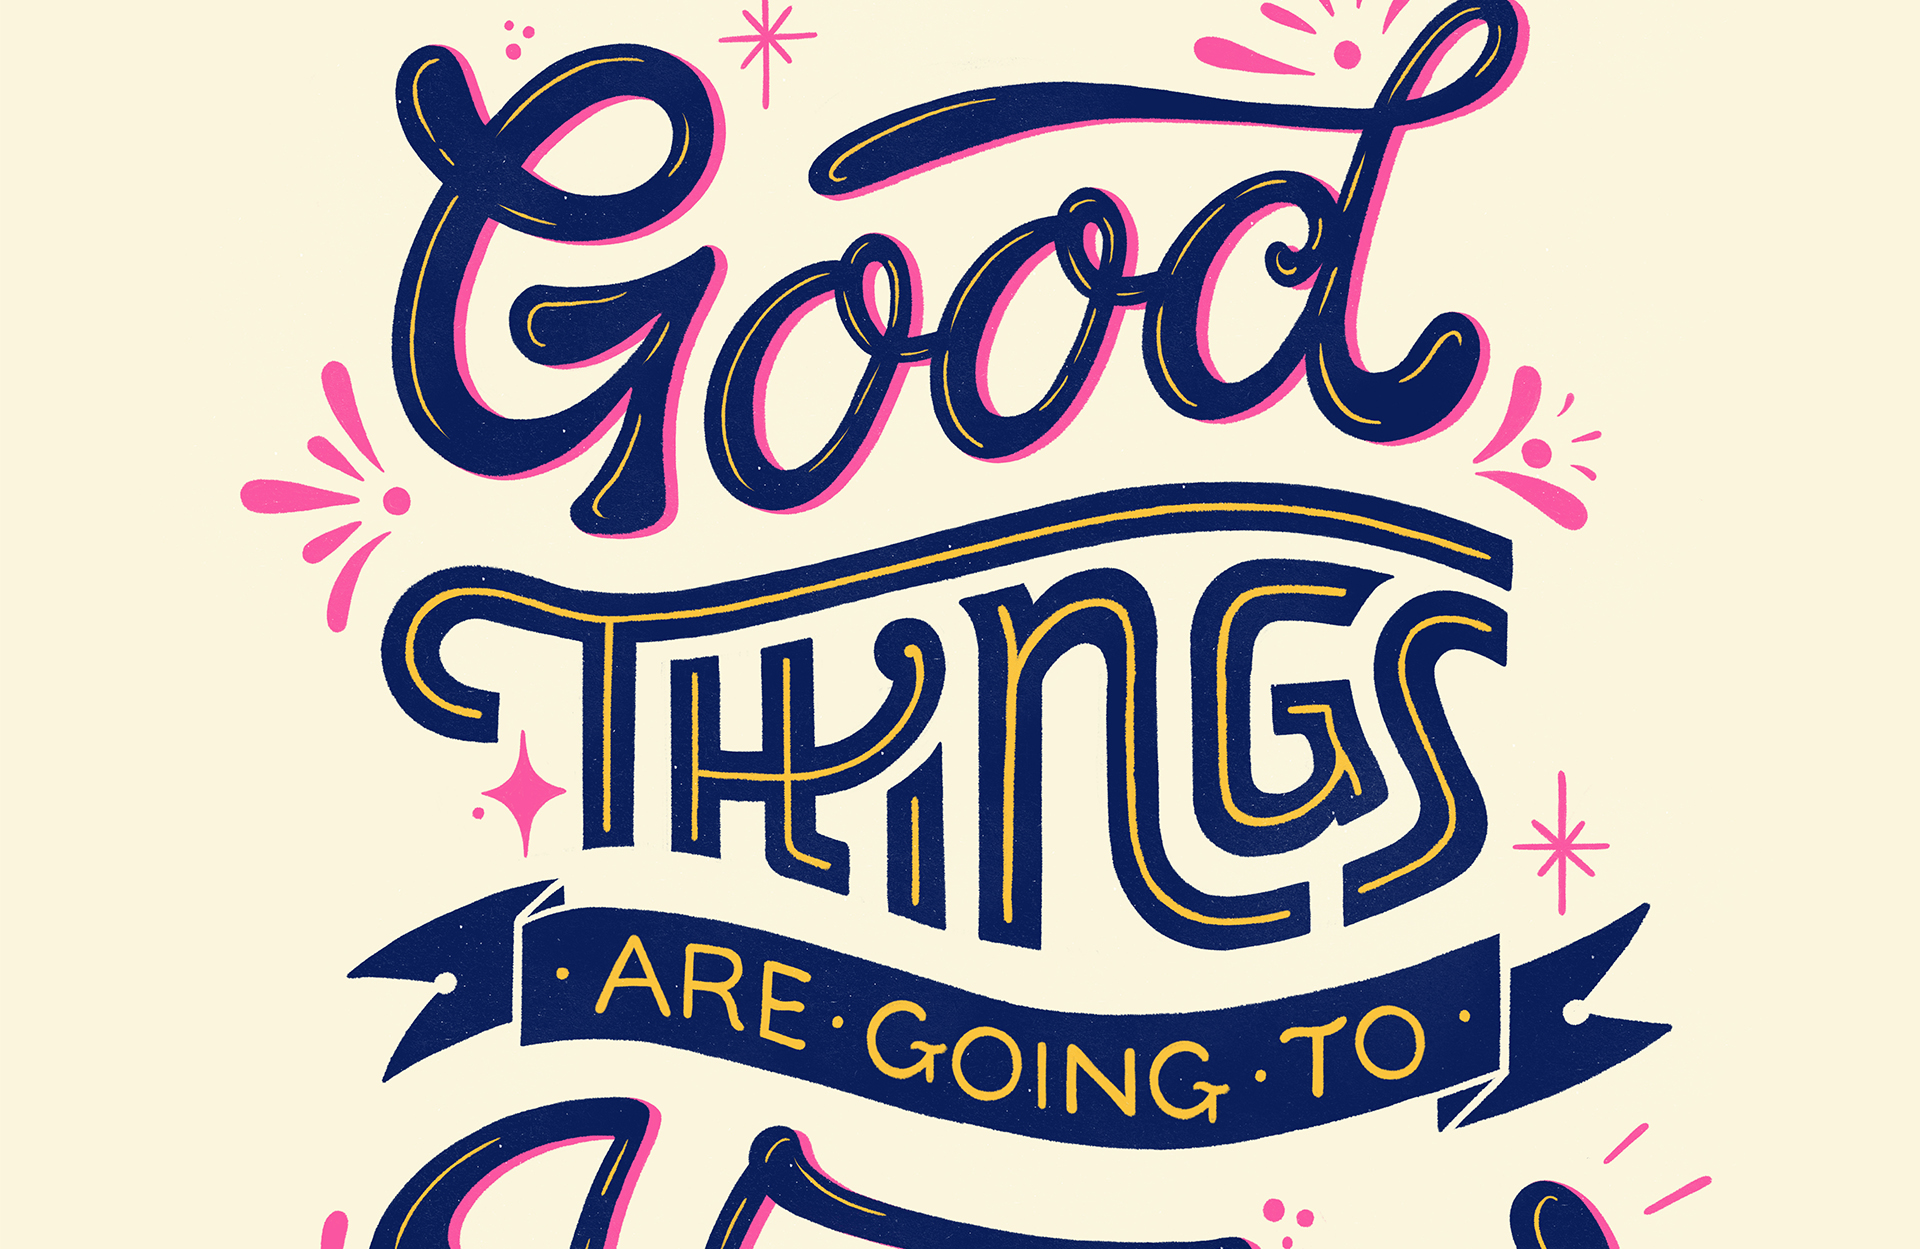 lucy_llewellyn-_good_things_are_going_to_happen_nine_by_nine_6.jpg